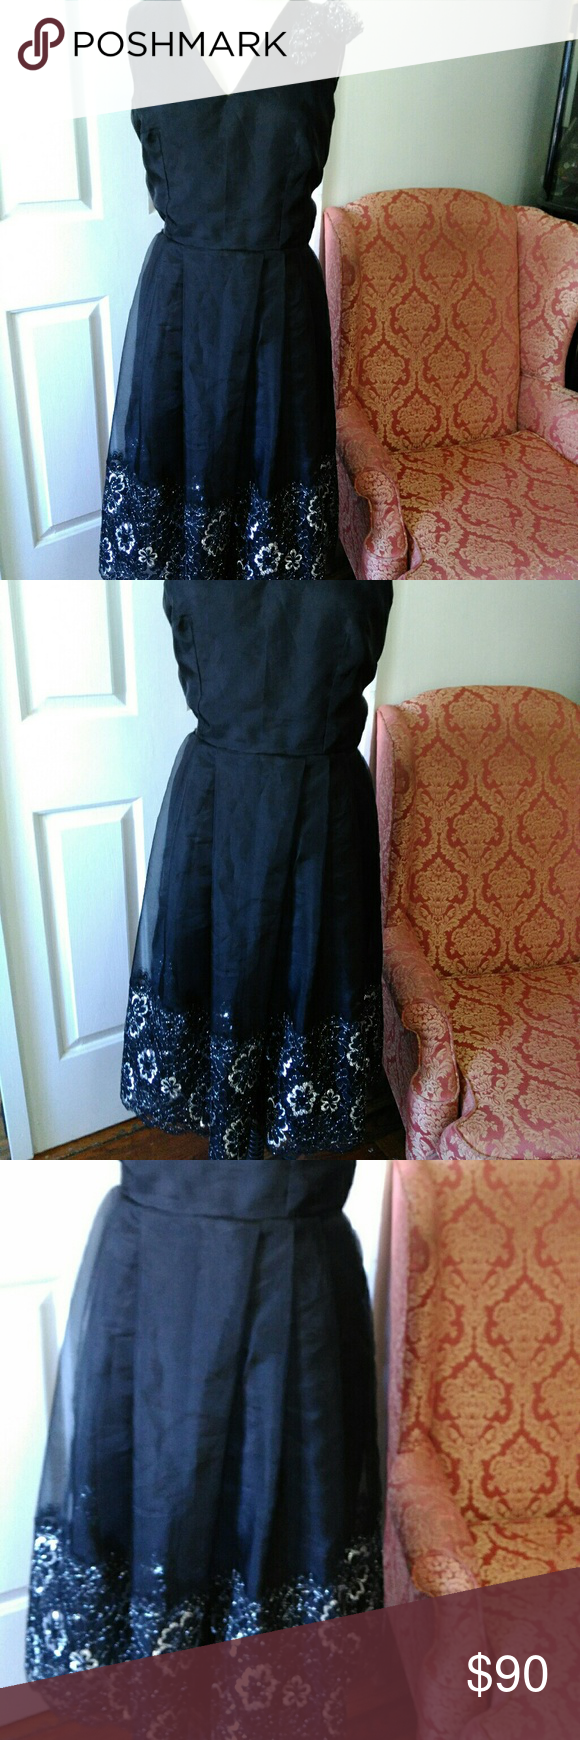 Lace below knee dress  Black Lace Finished Dress  Size   Black laces Floral lace and